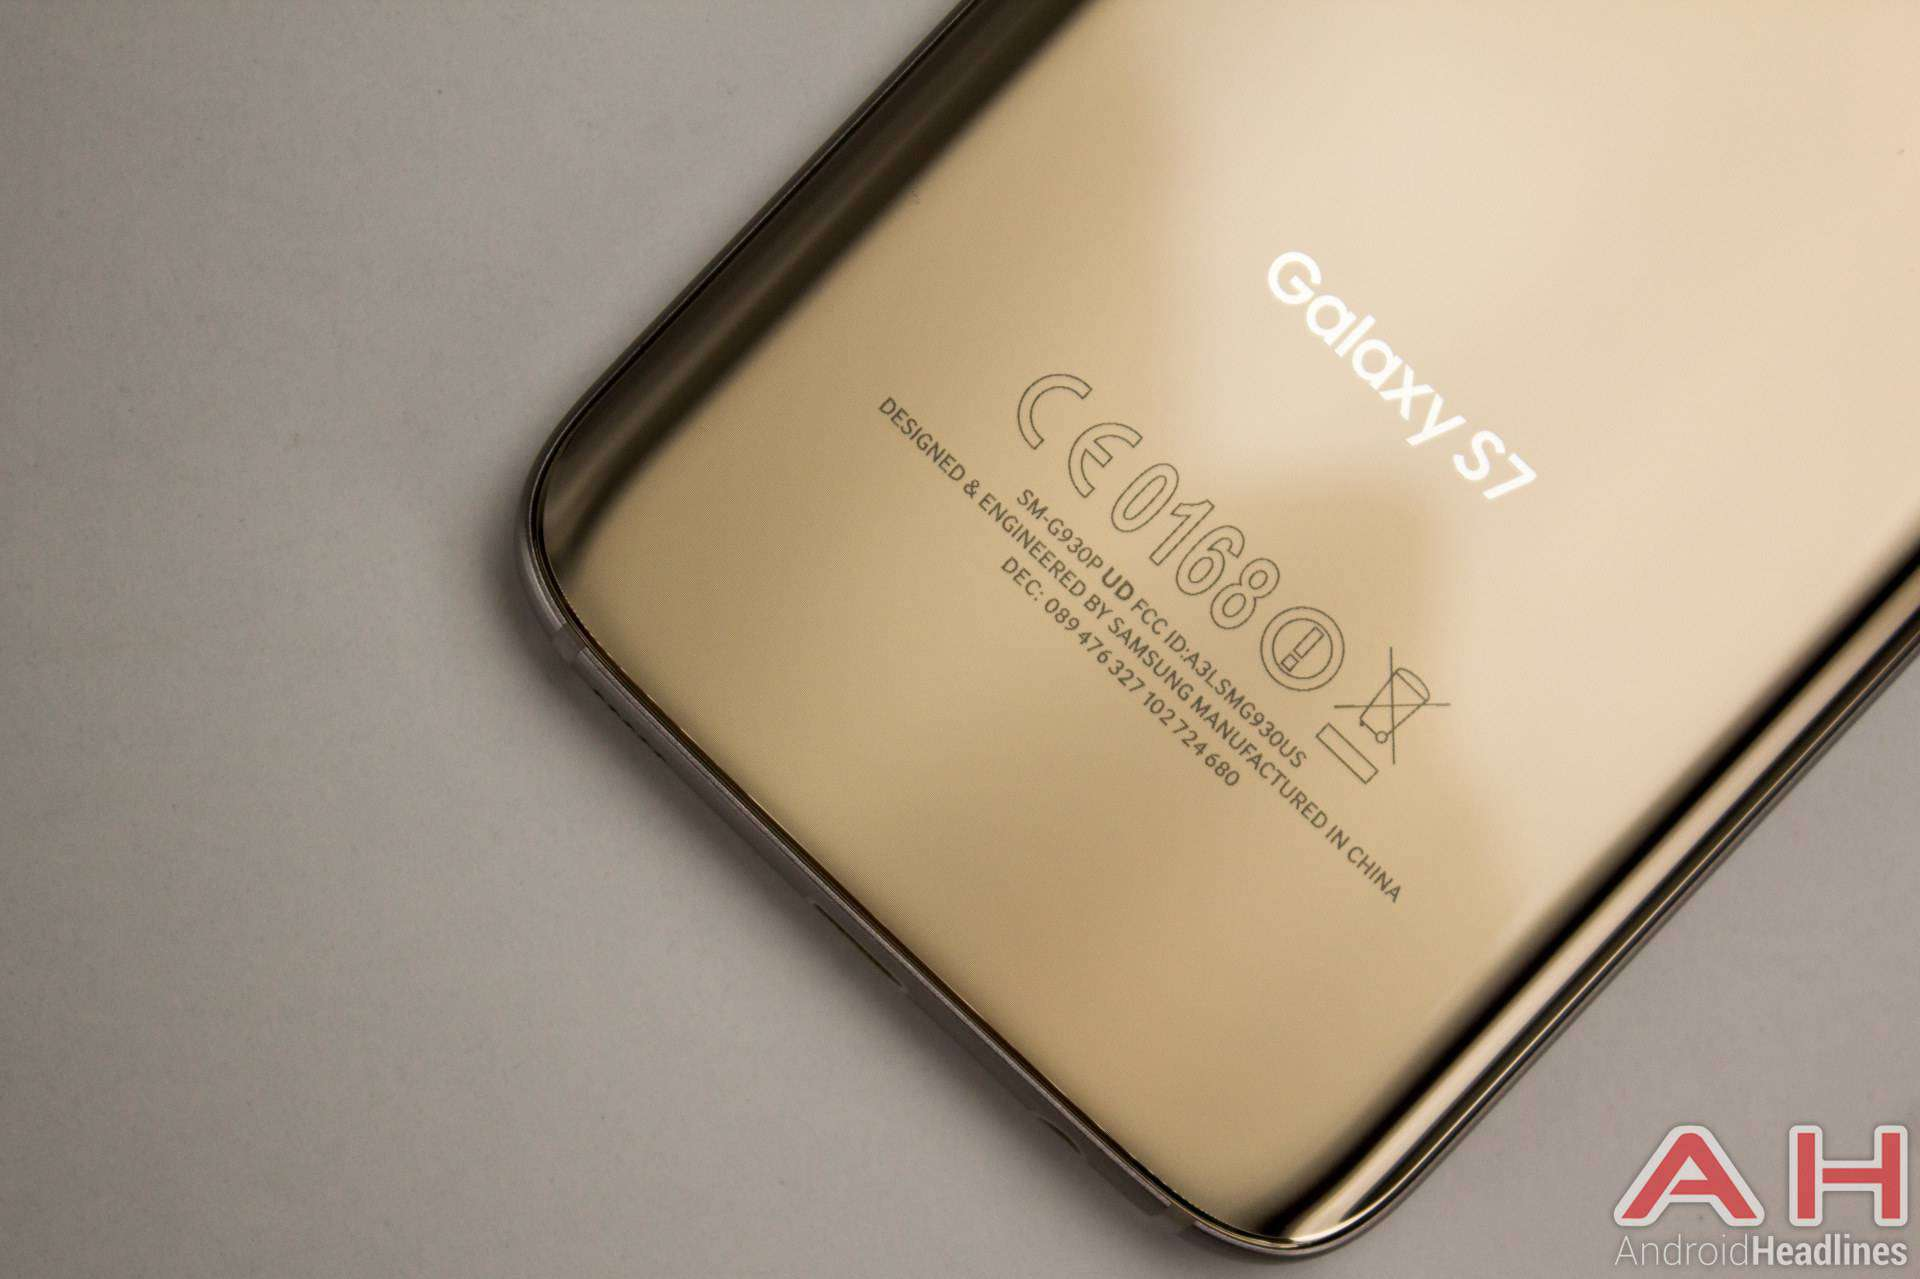 Samsung-Galaxy-S7-AH-NS-gold-logo